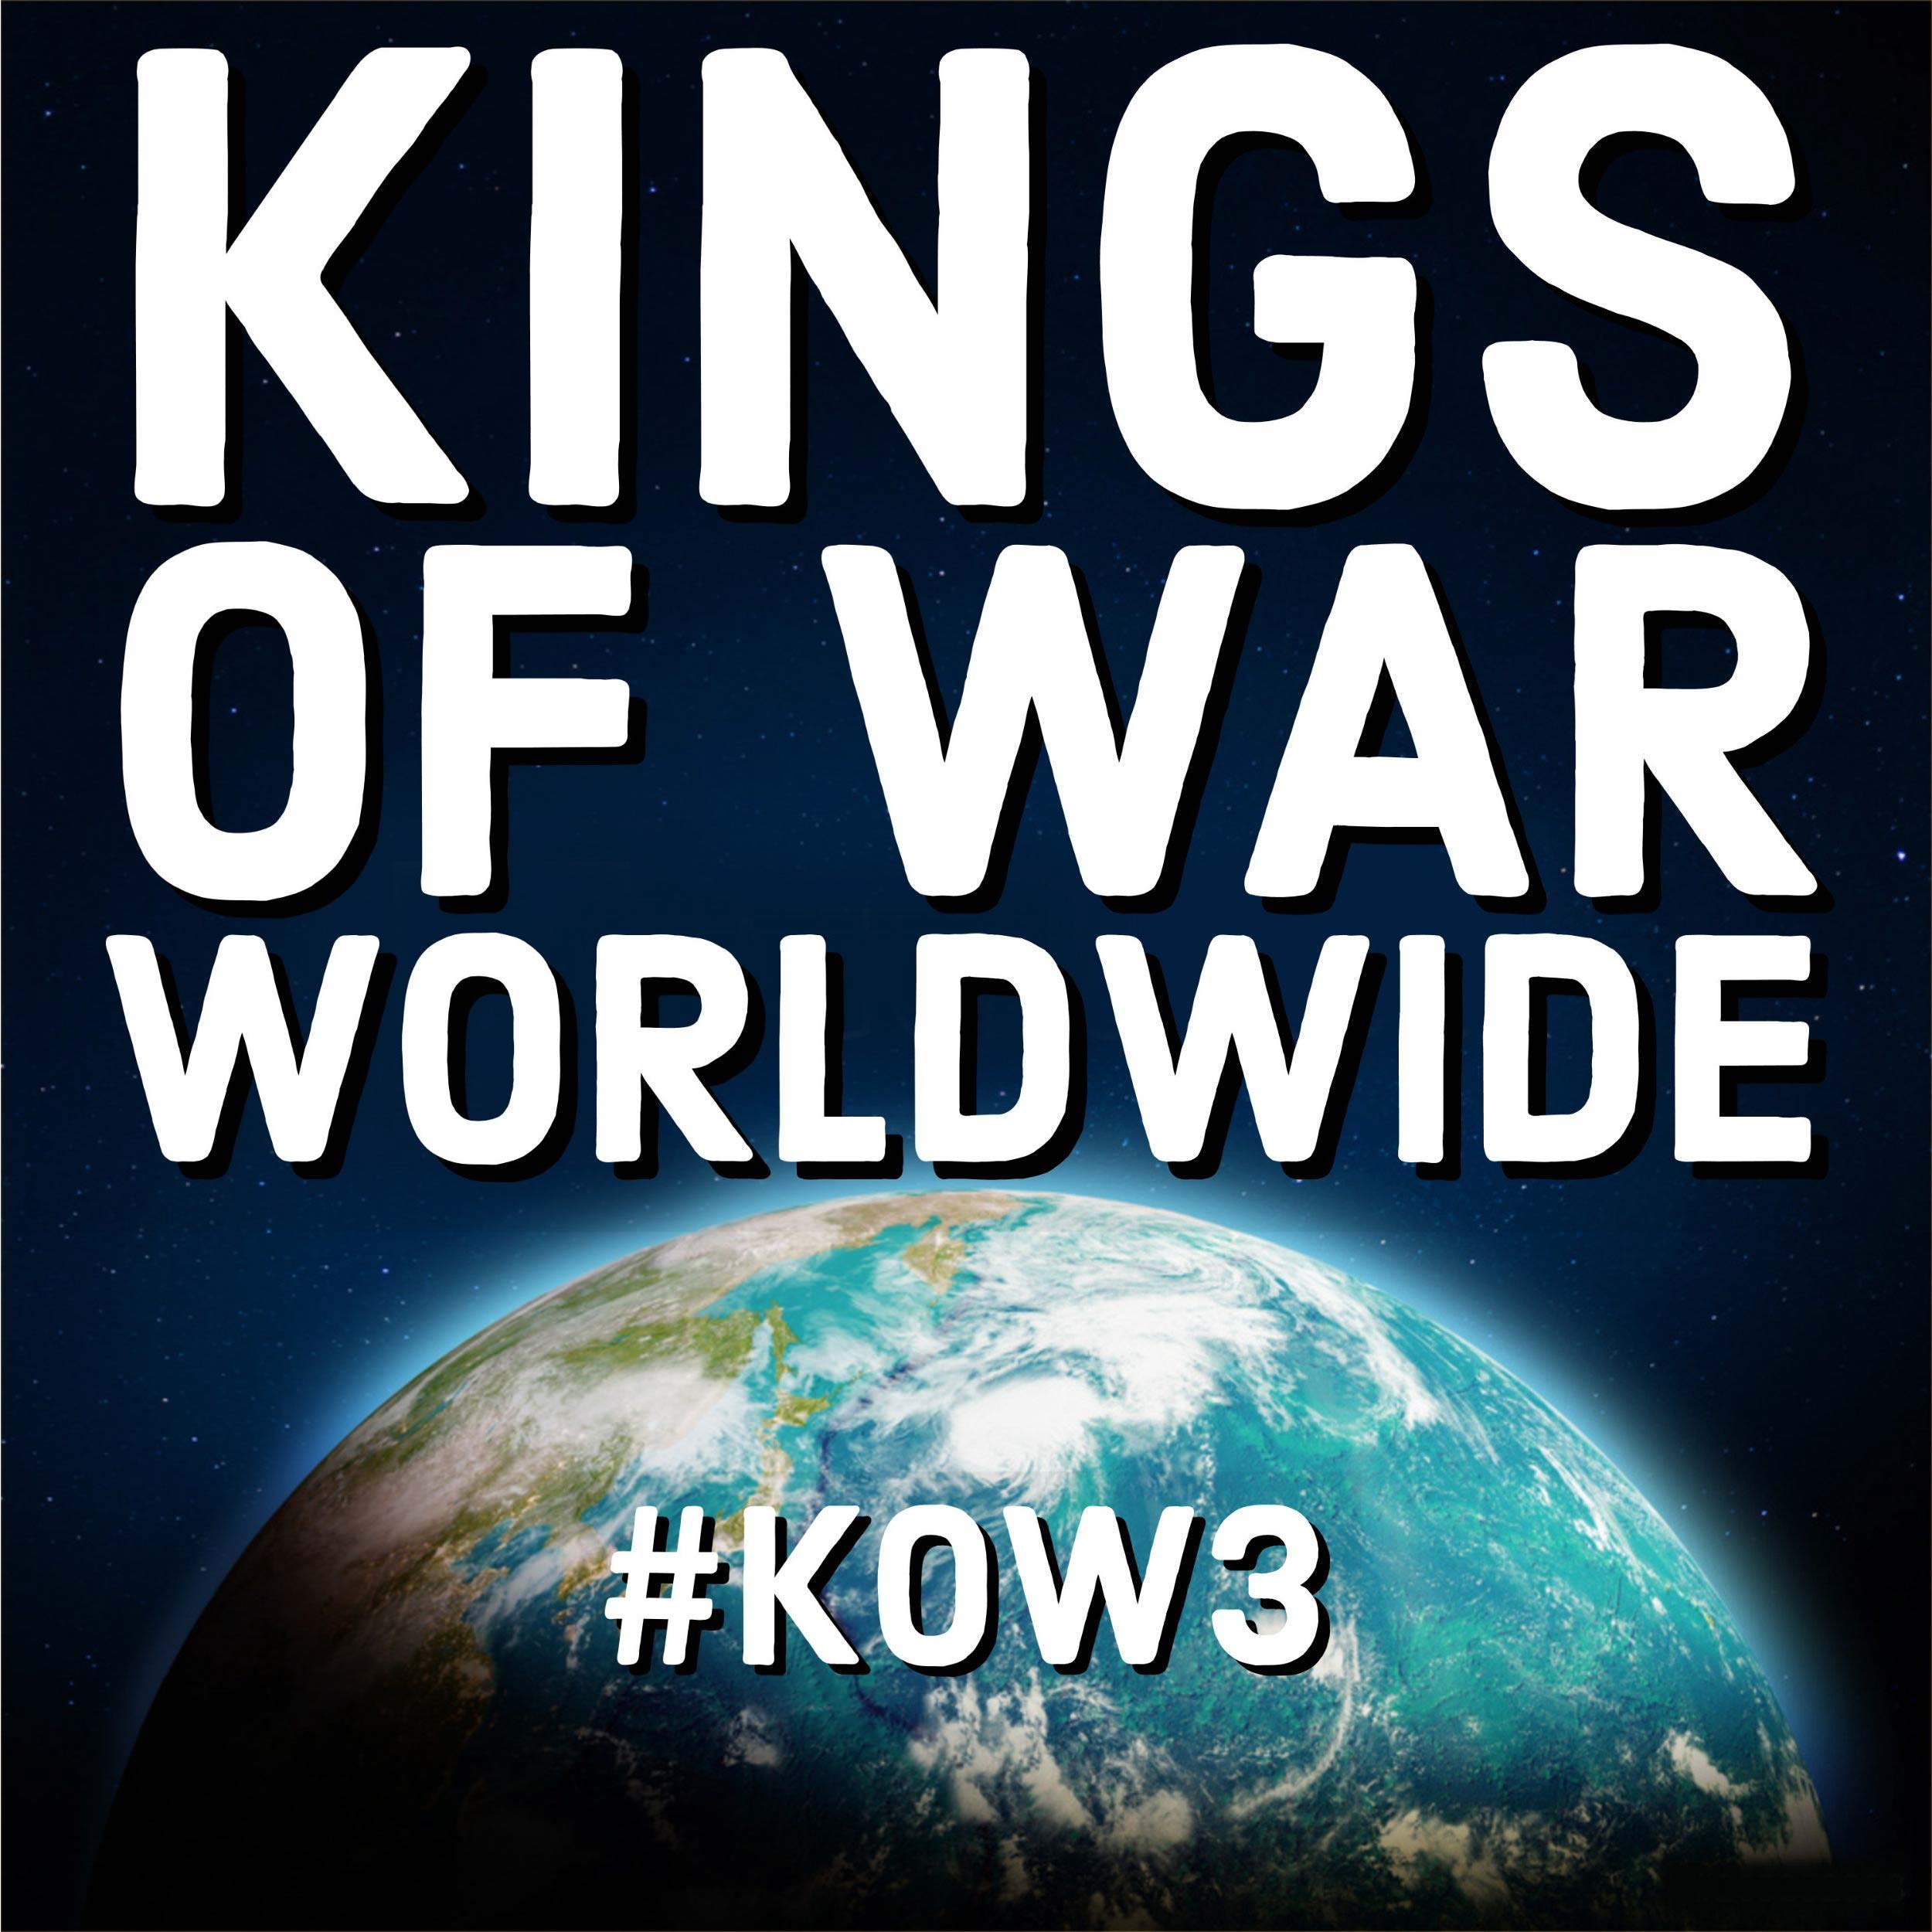 Kings of War WorldWide (KOW3), the Podcast